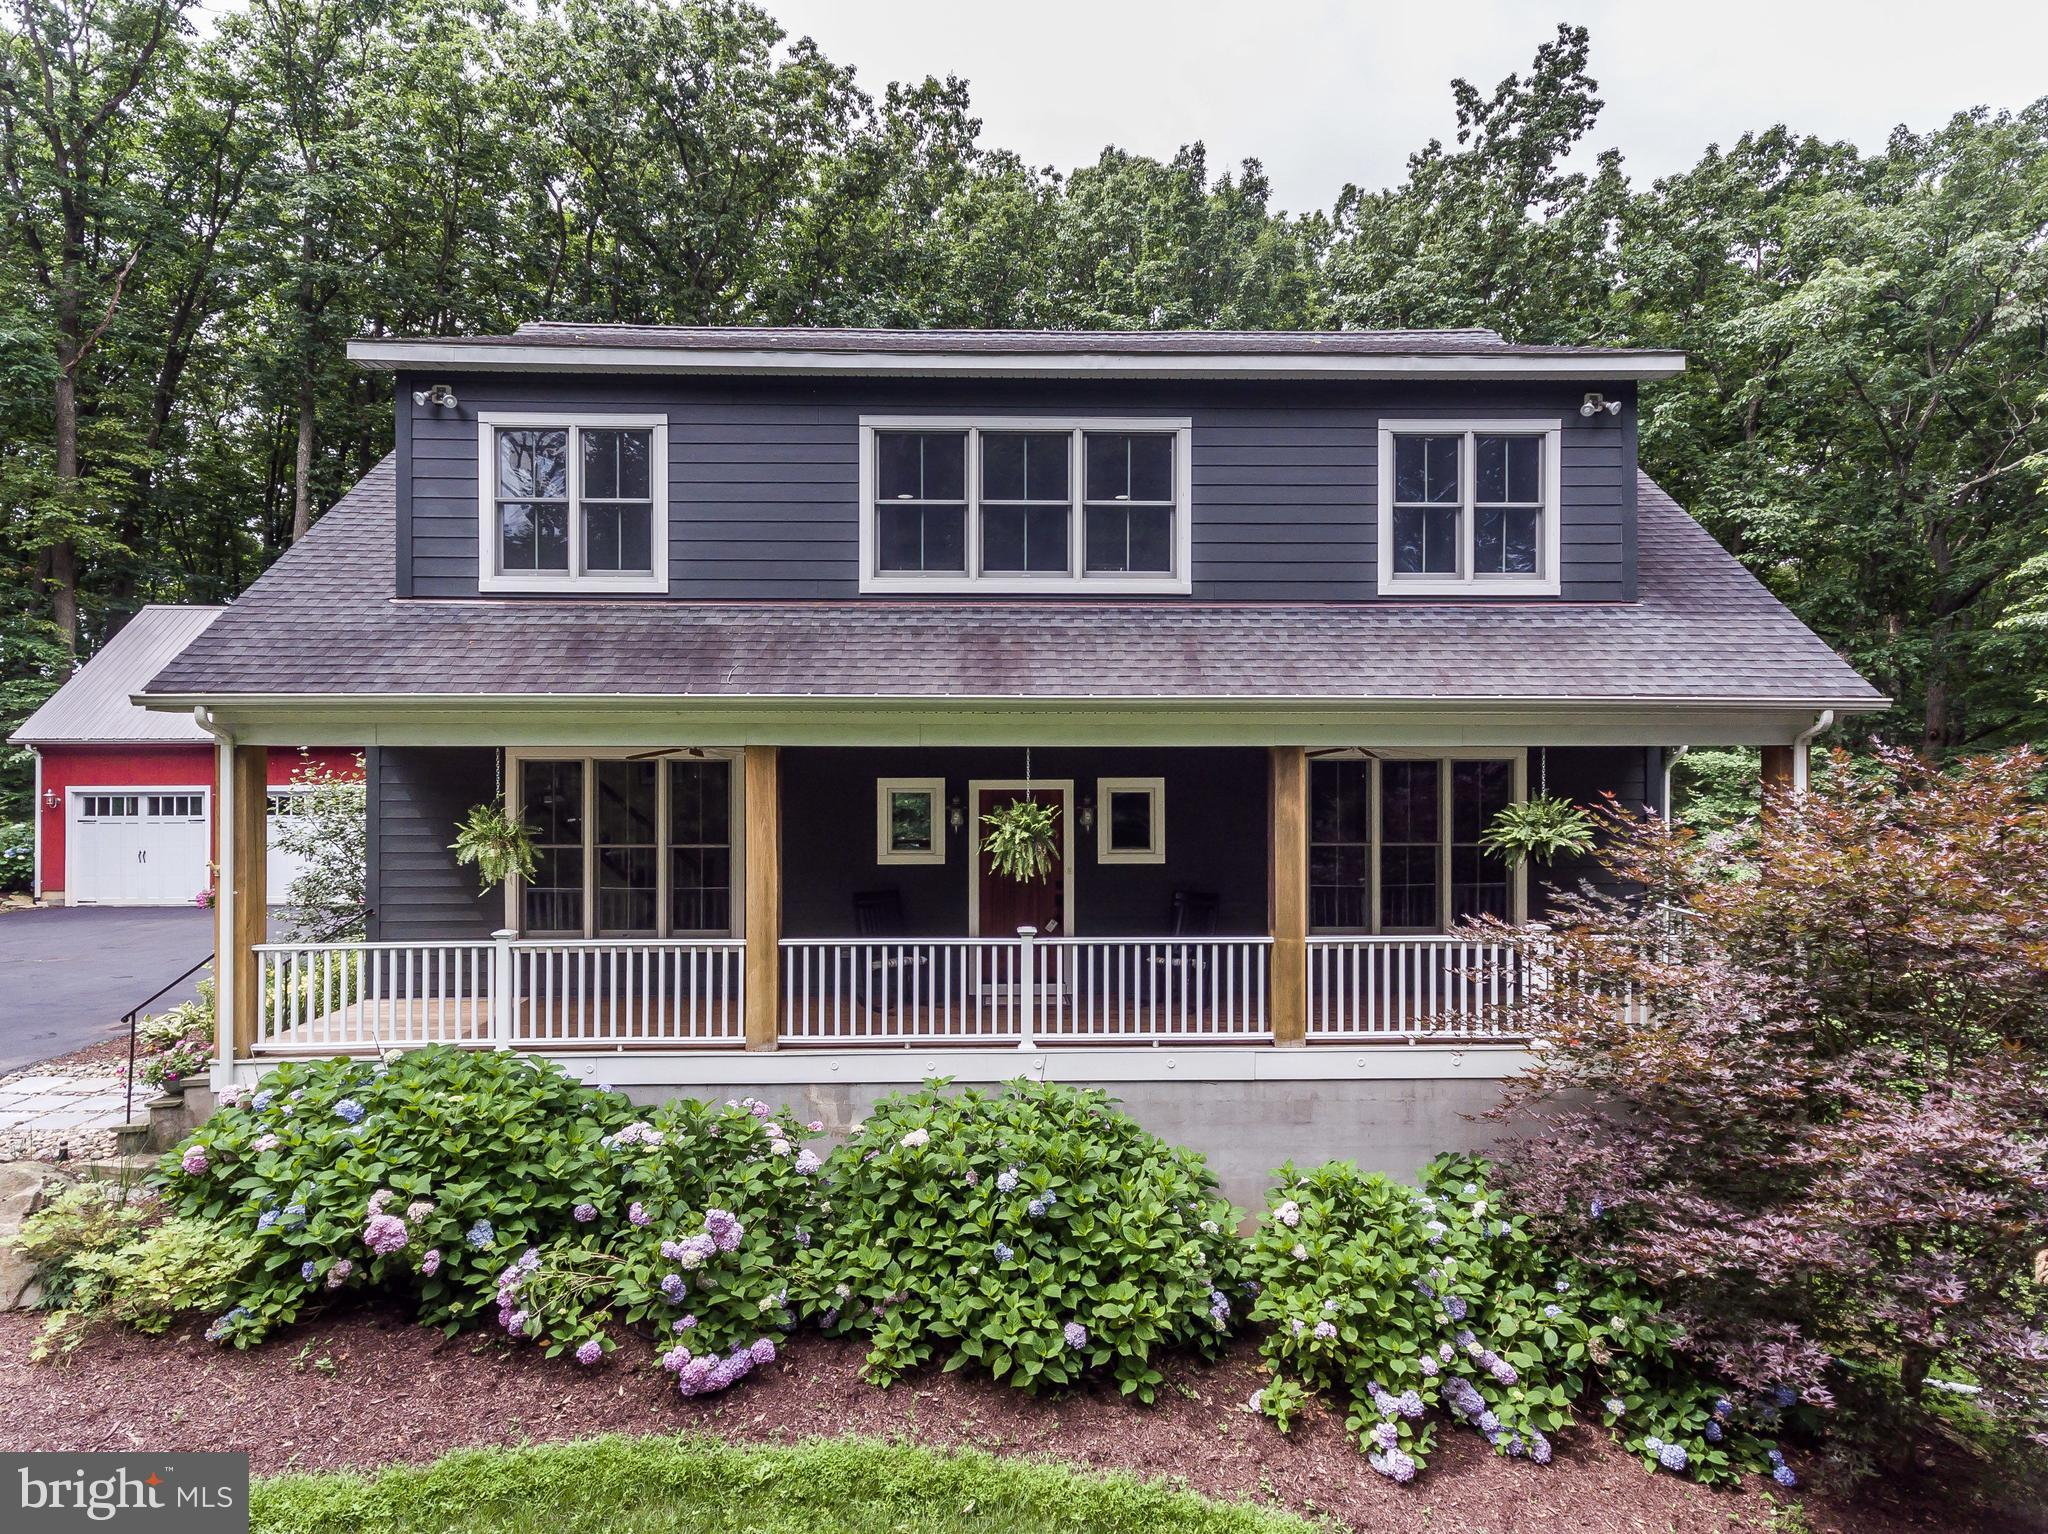 16526 DUBBS ROAD, SPARKS, MD 21152